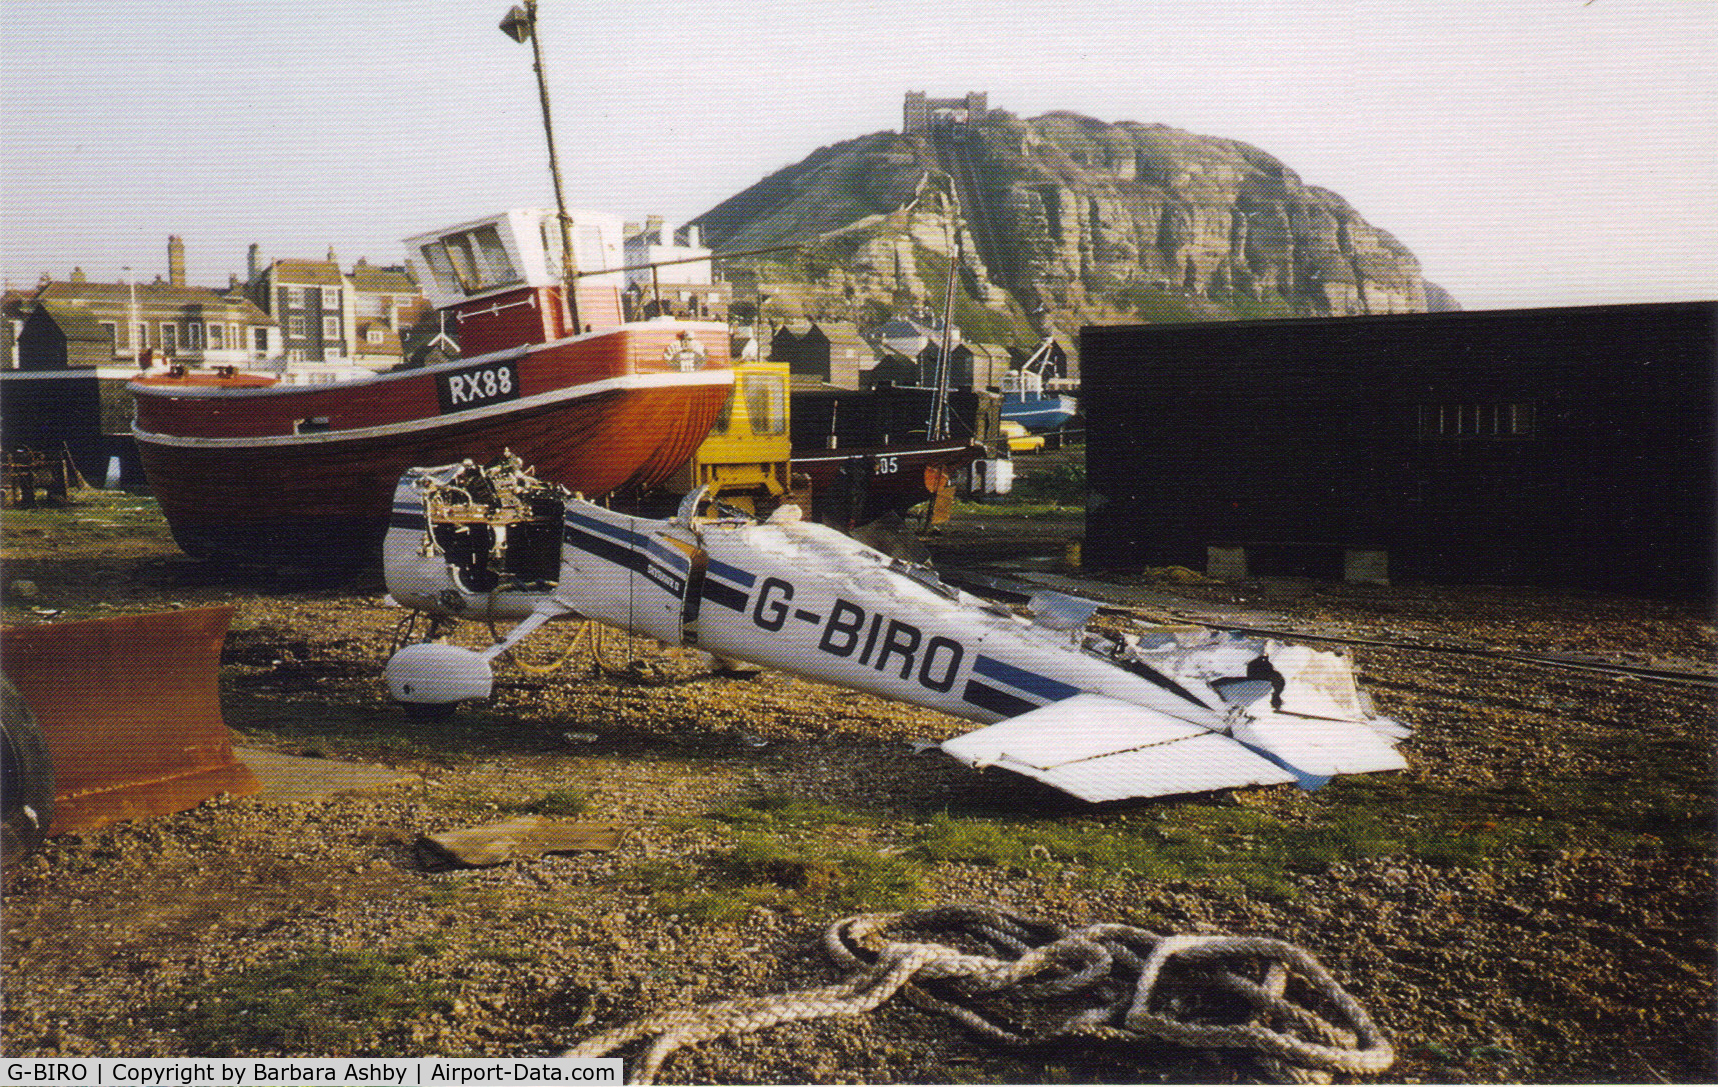 G-BIRO, 1981 Cessna 172P Skyhawk C/N 172-74826, The Stade, Old Town, Hastings.